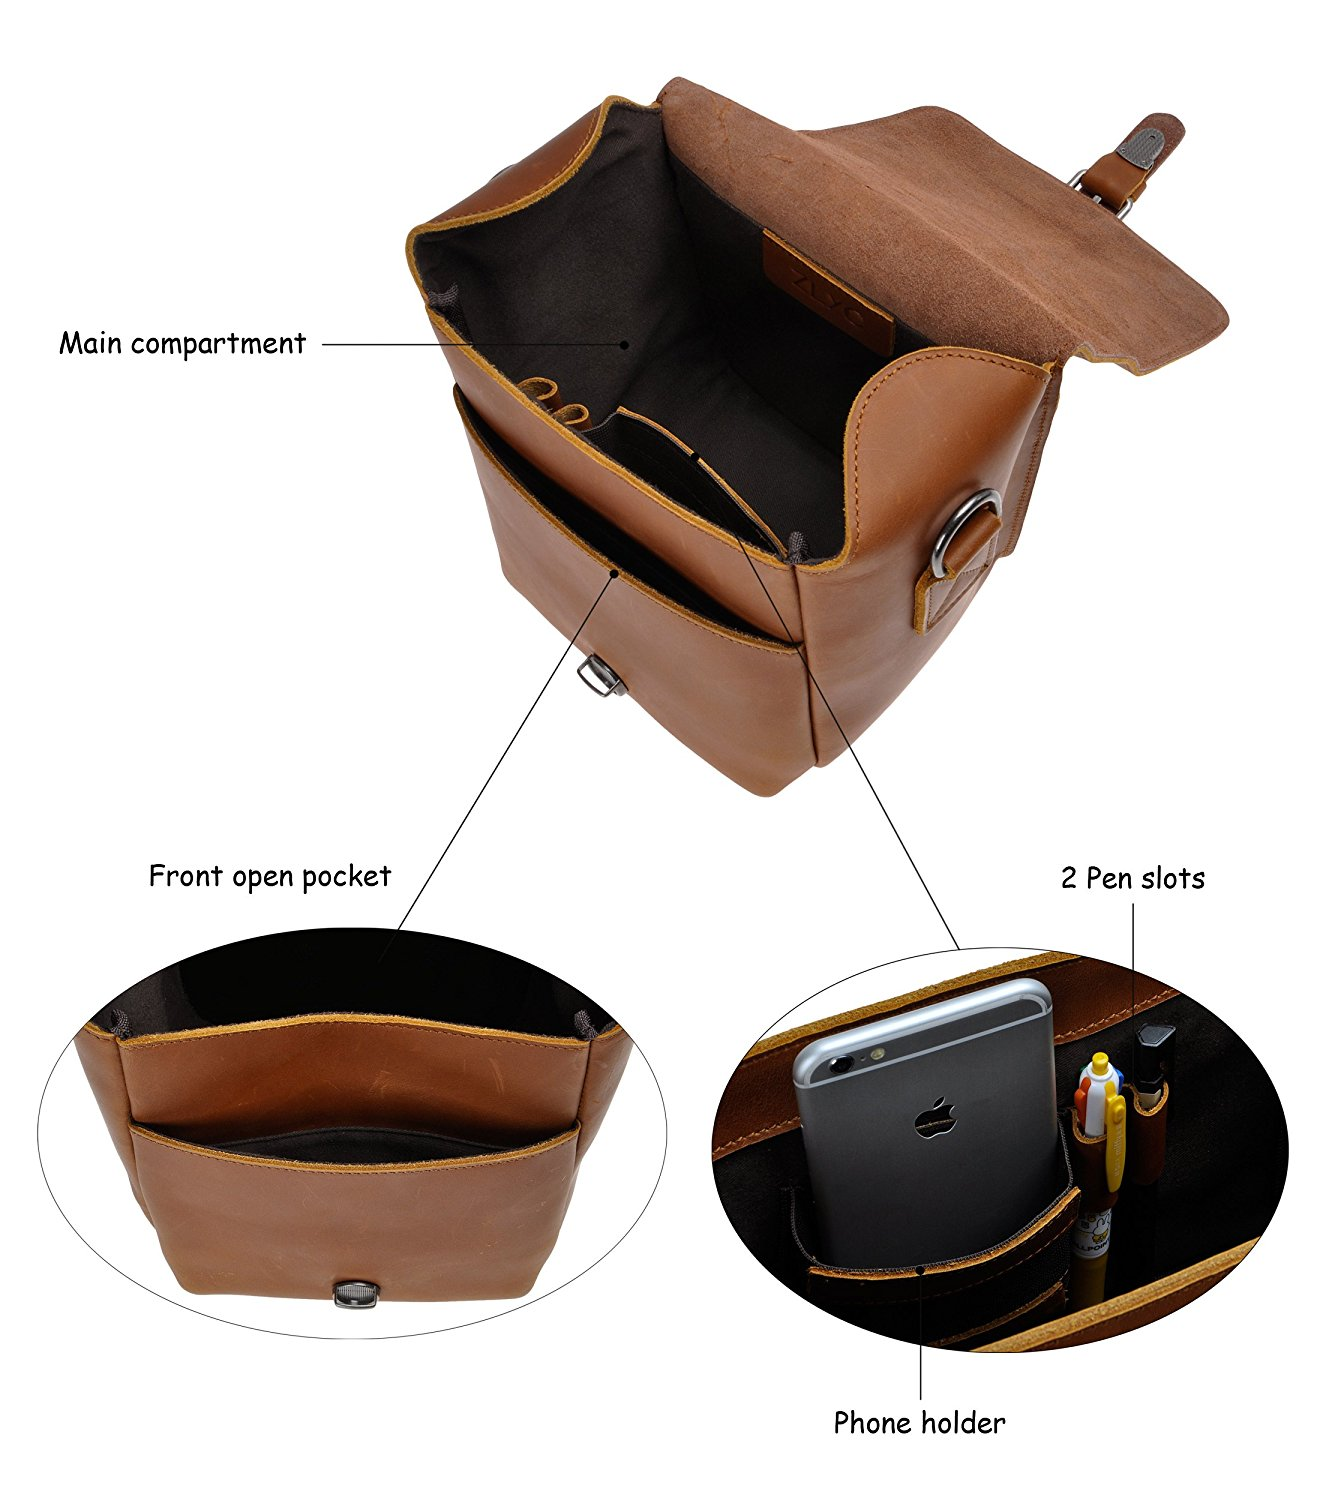 ZLYC Leather Messenger Bag, best leather camera bags, leather bags for camera, leather camera backpack